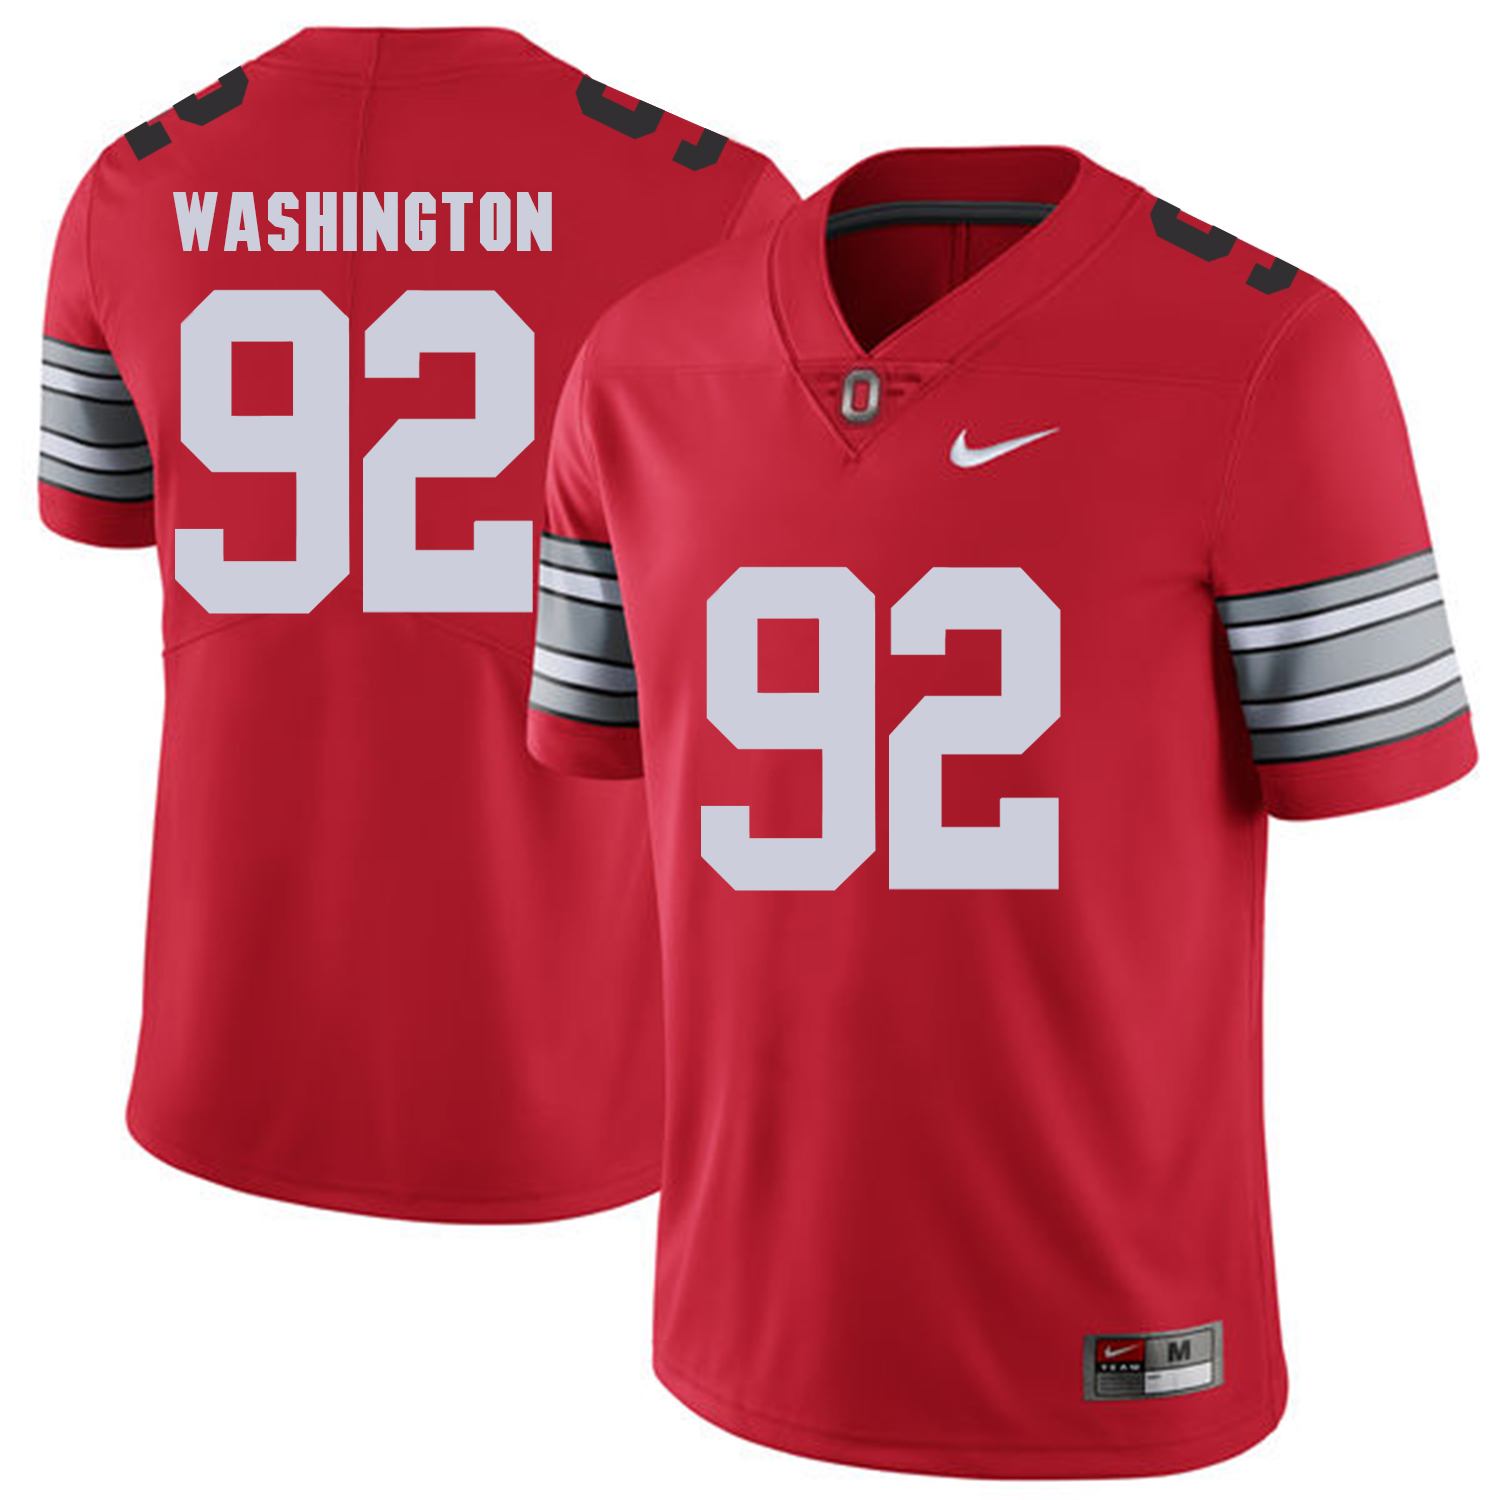 Men Ohio State 92 Washington Red Customized NCAA Jerseys